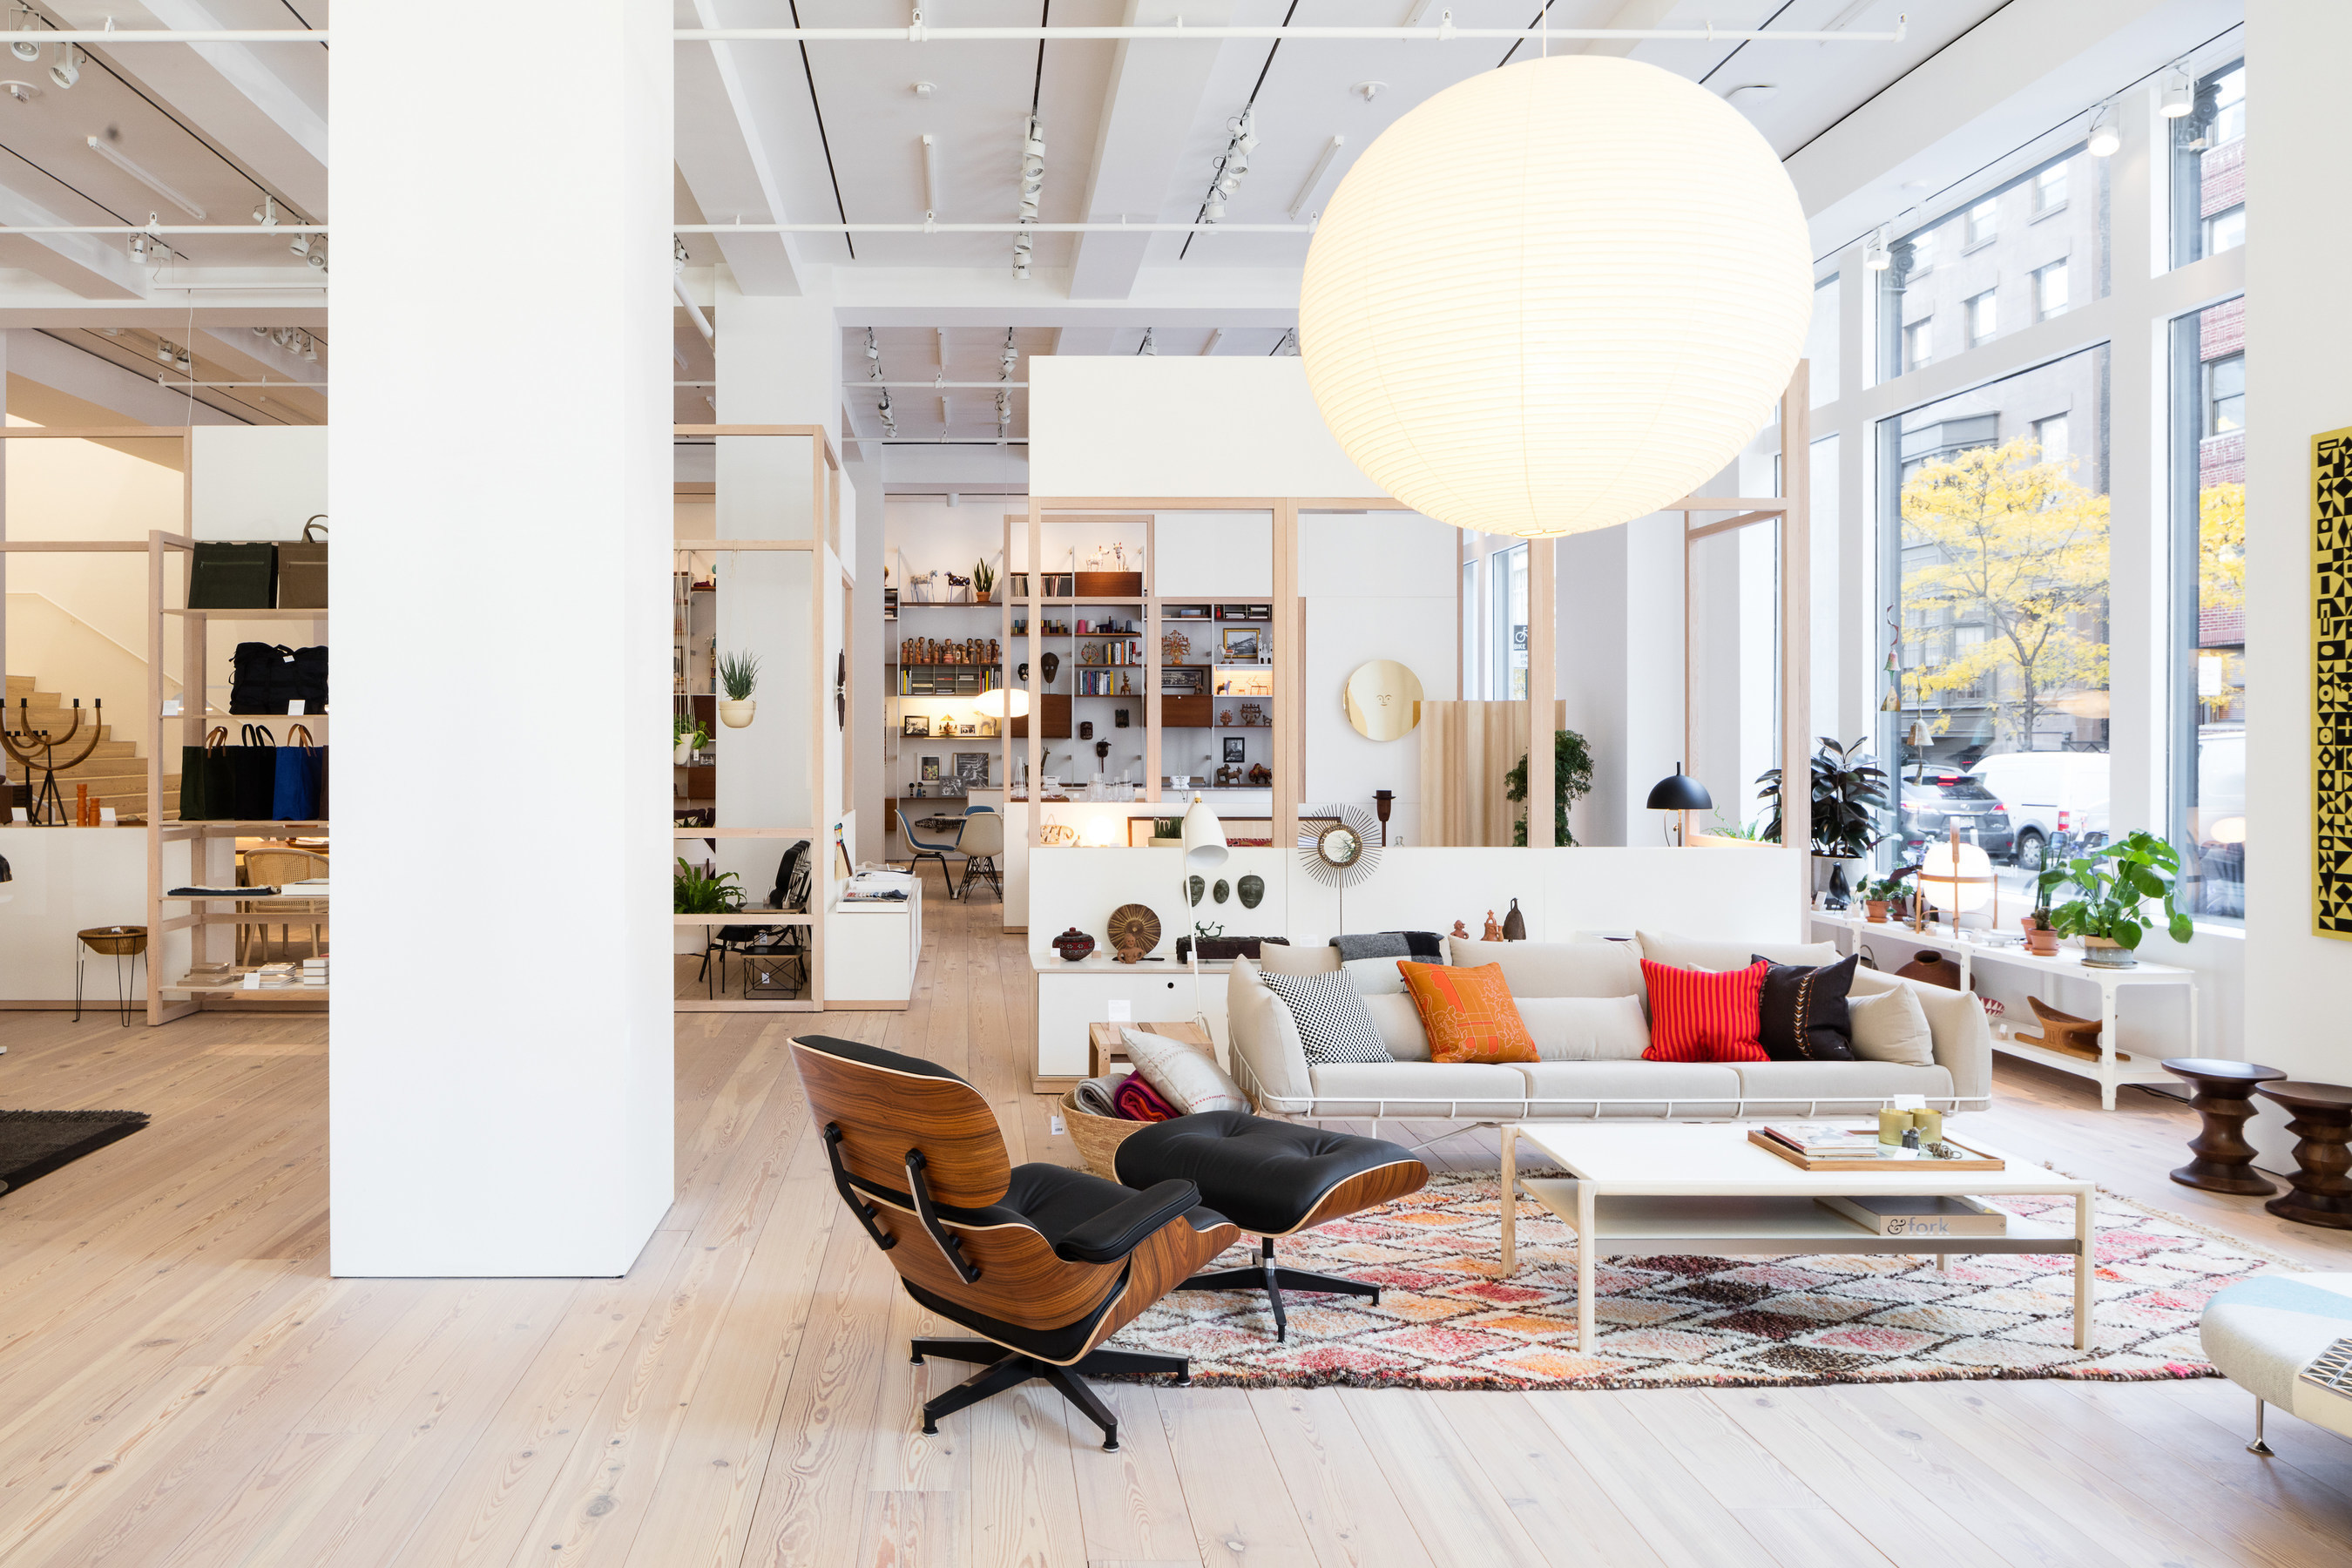 Herman Miller Opens New York City Flagship Store - Photo credit Nicholas Calcott.